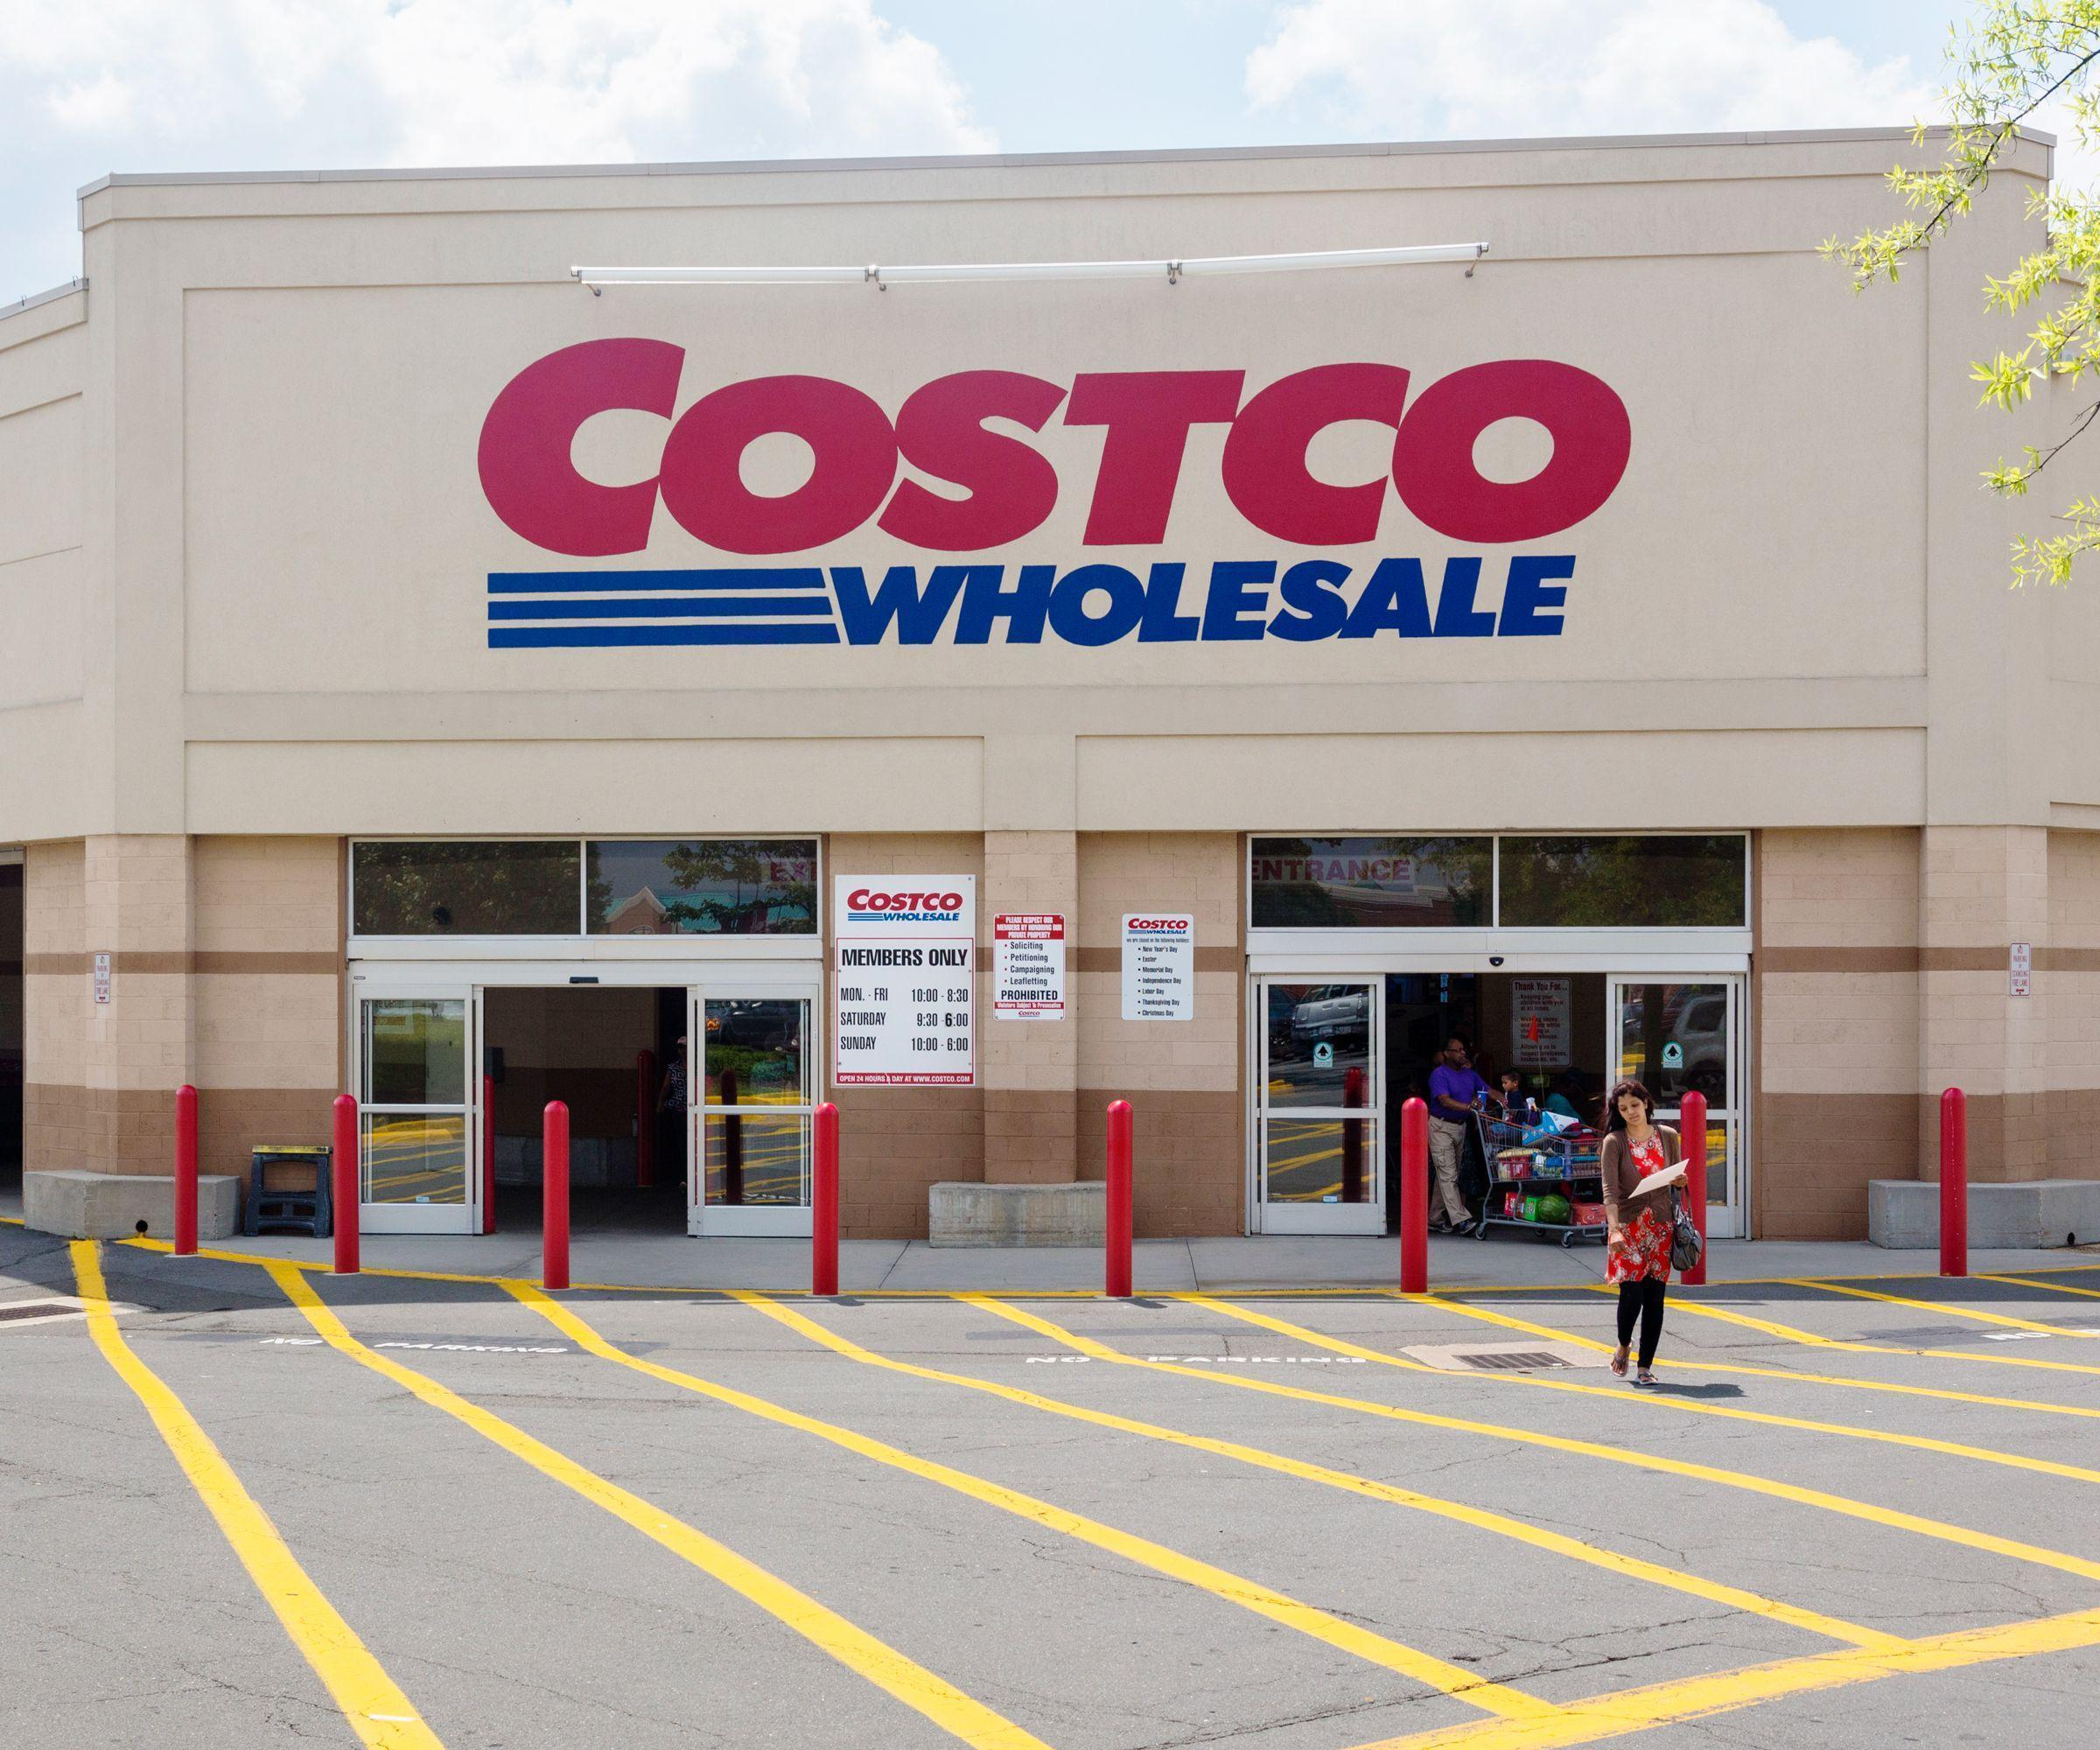 Costco Year Membership with Cash Card